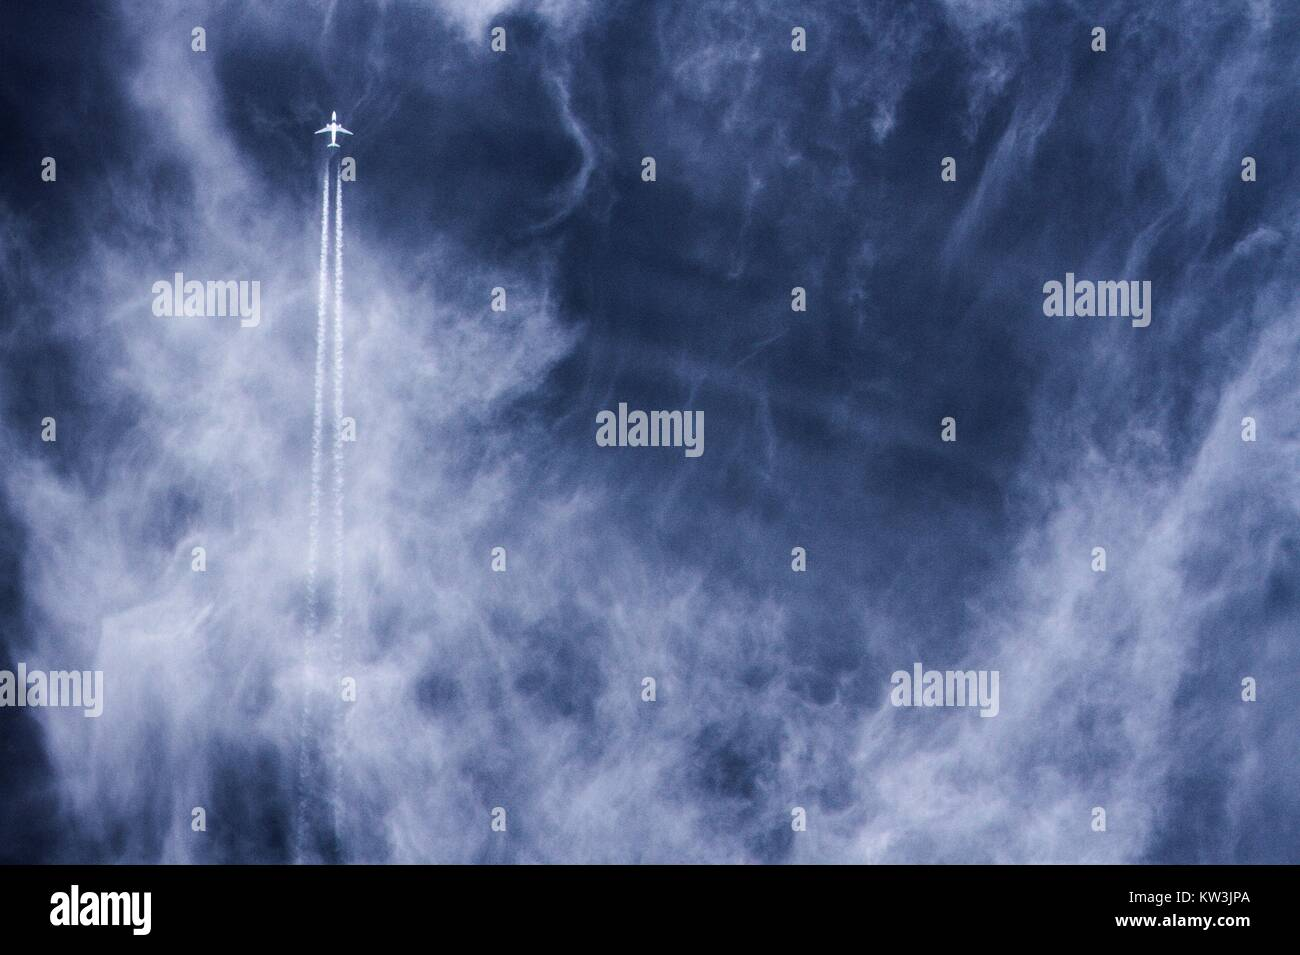 Far away jet plane travelling straight up with vapor trails against blue cloudy sky. Stock Photo